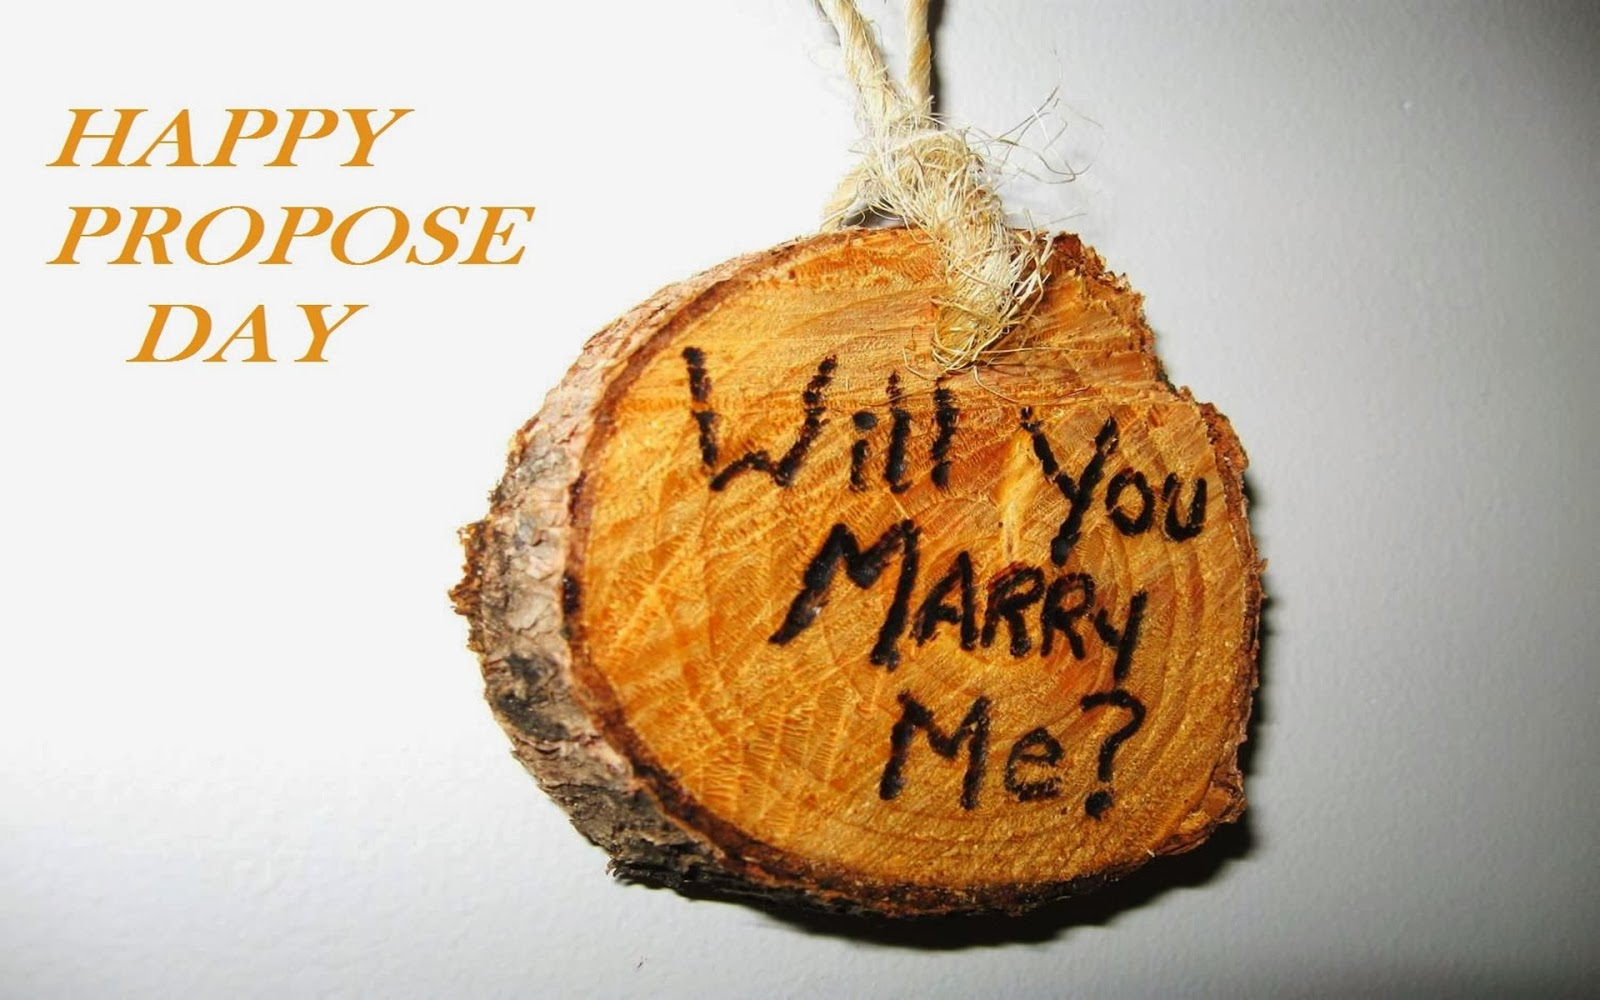 Happy propose day photos 2016